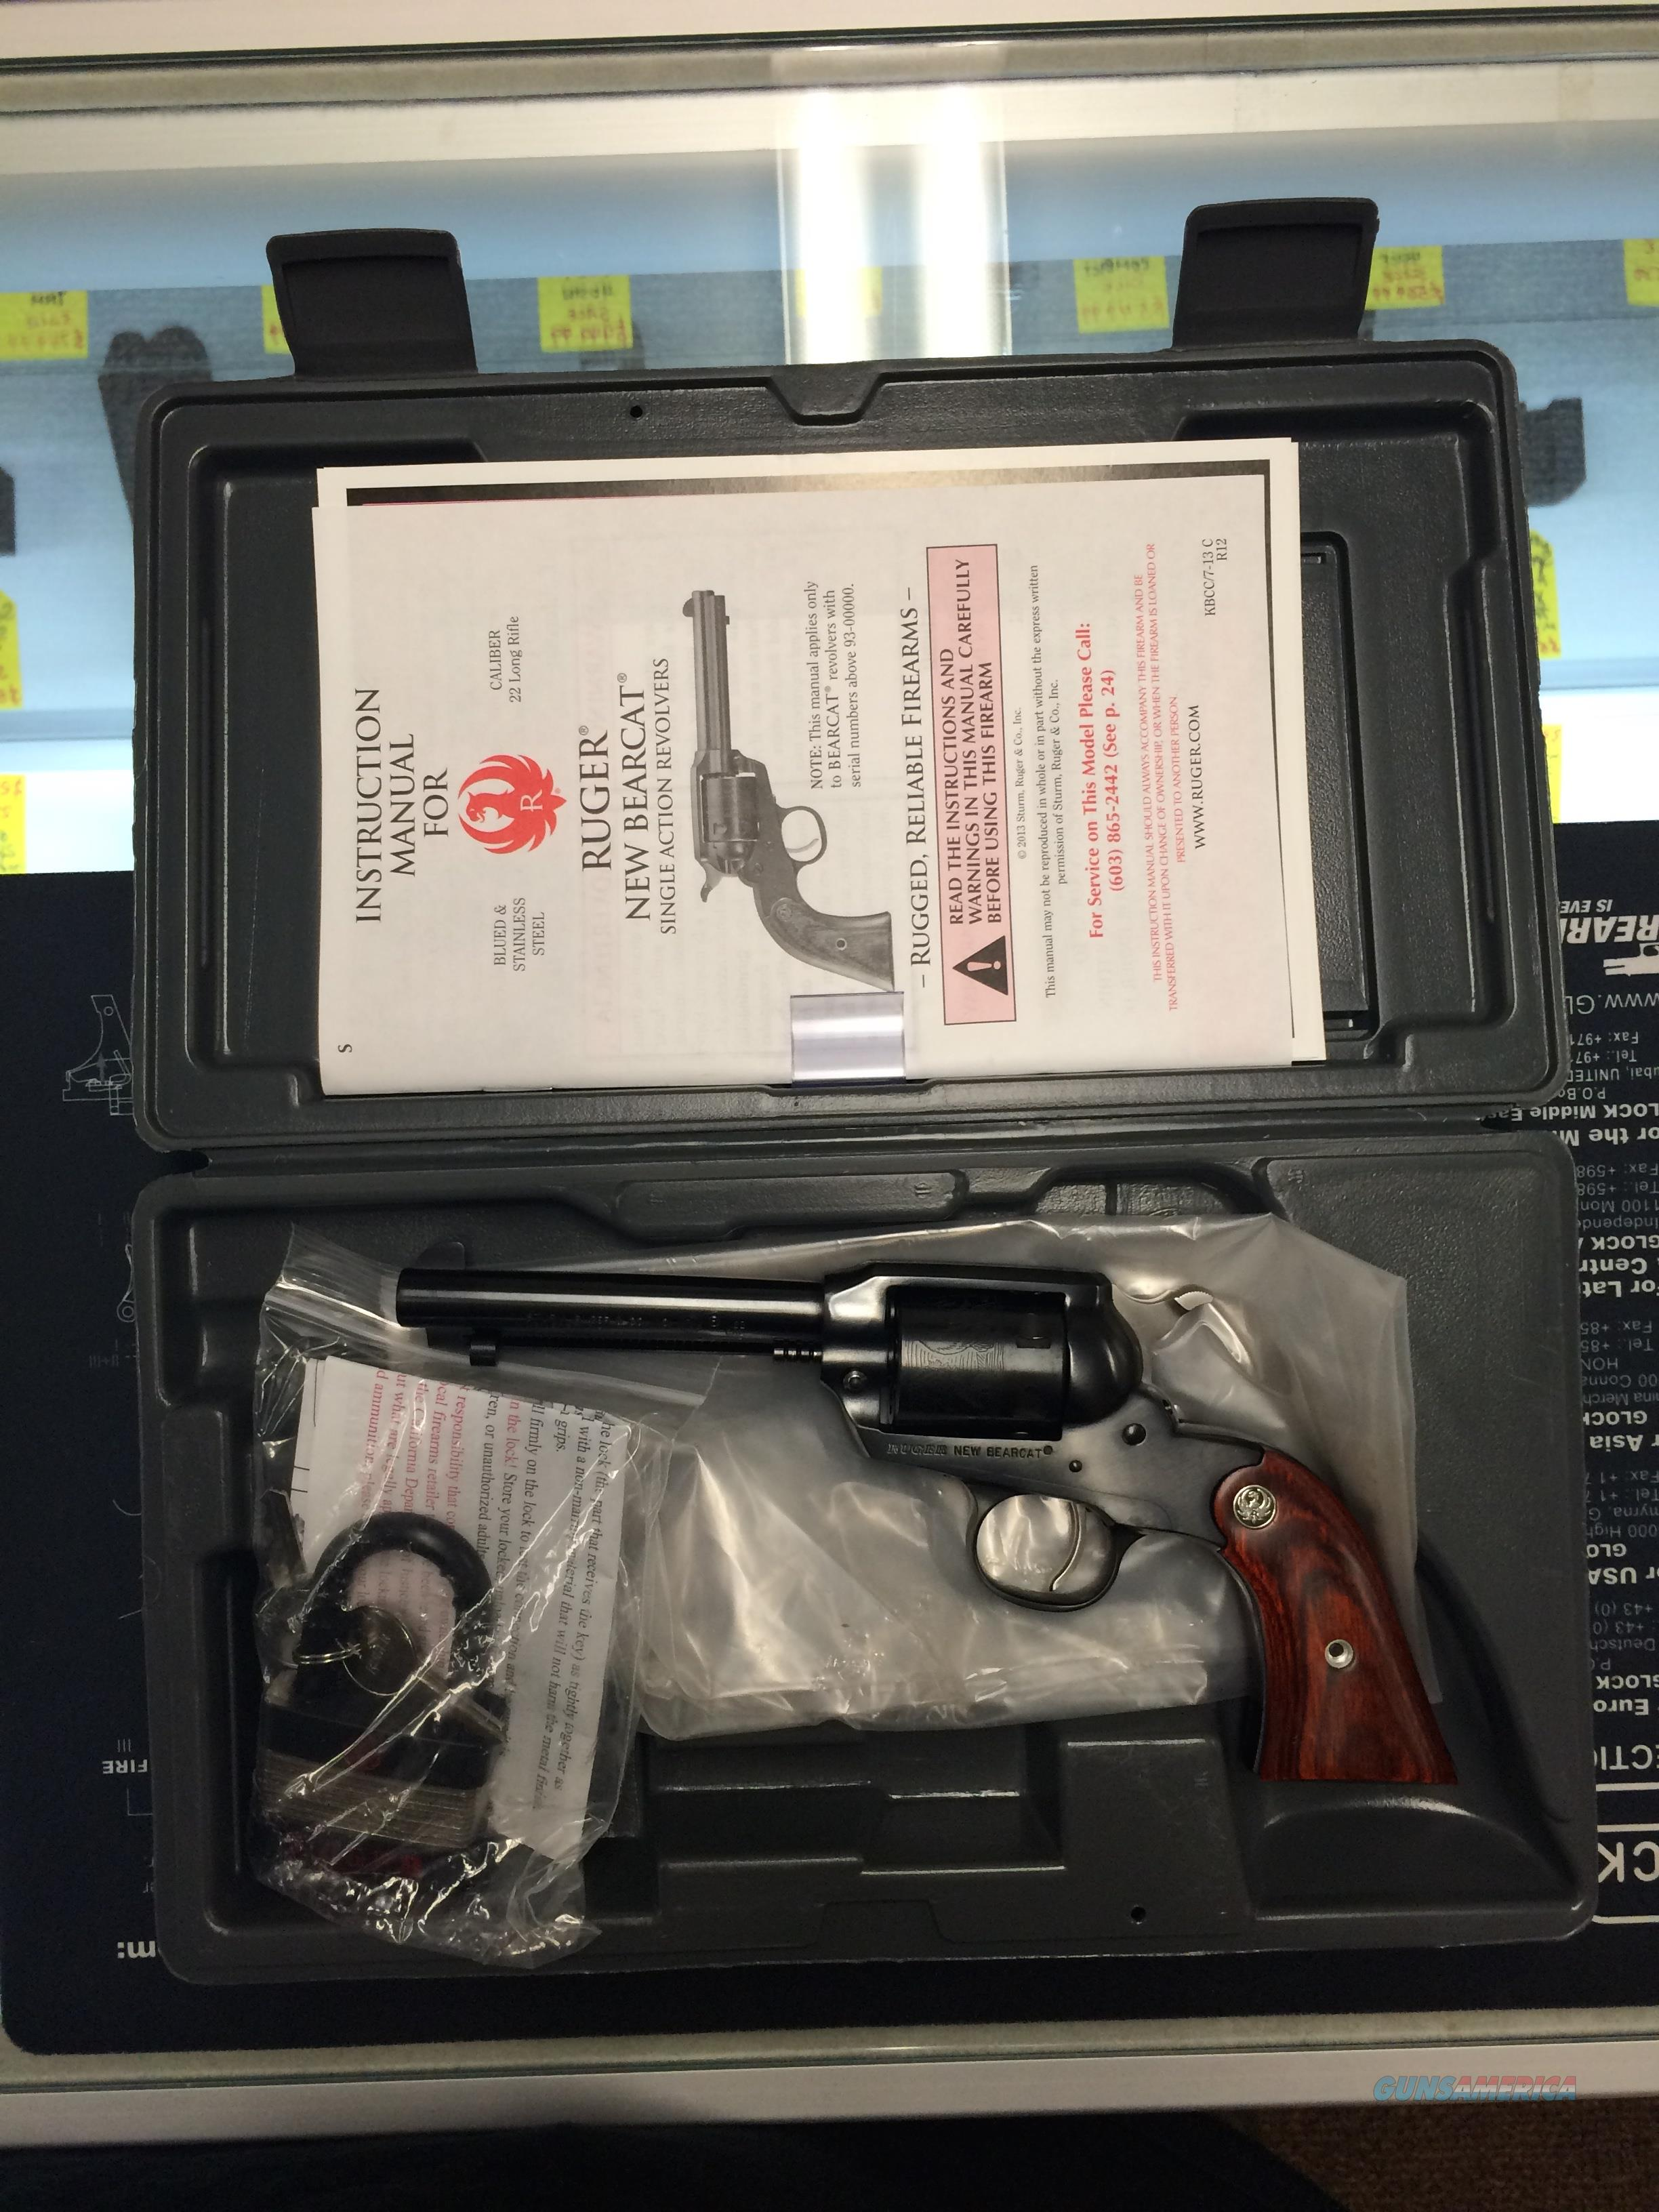 "BRAND NEW RUGER BEAR CAT 22LR 0912 4"" FREE SHIPPING!!   Guns > Pistols > Ruger Single Action Revolvers > Bearcat"